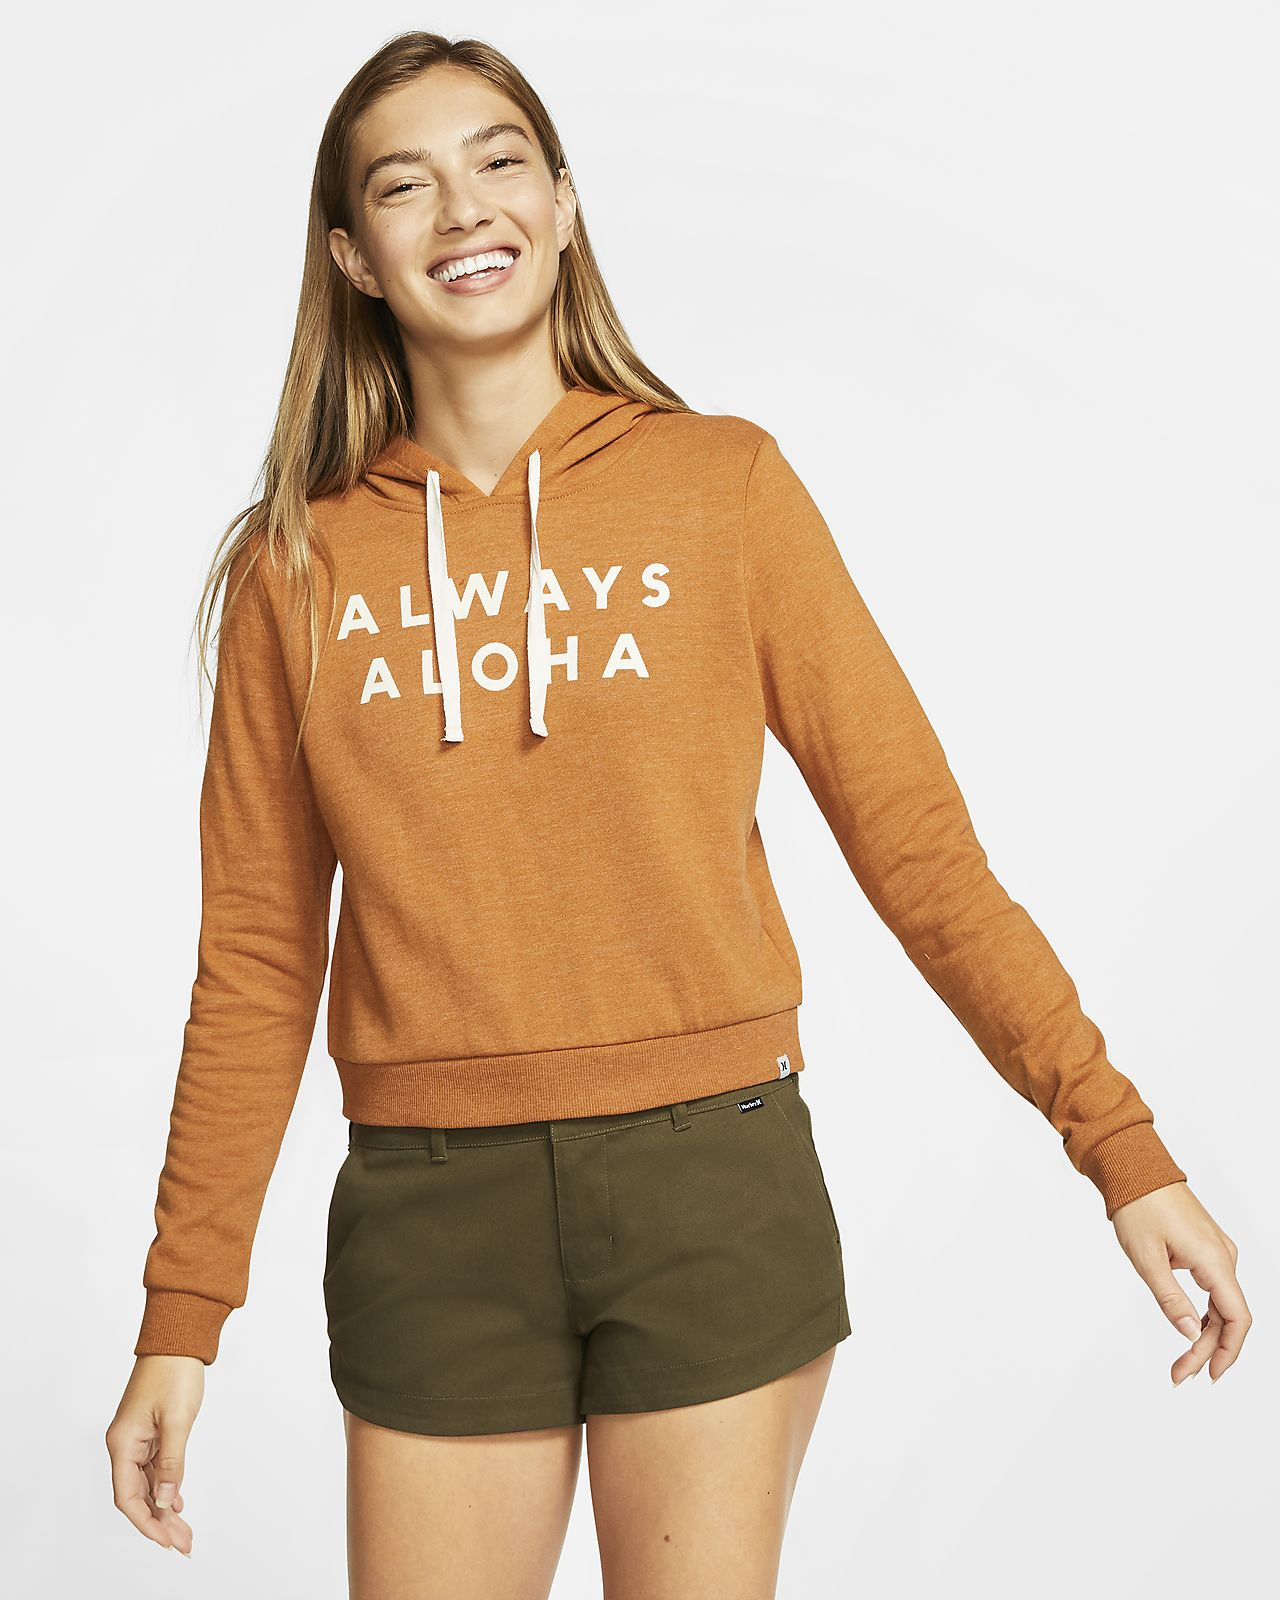 Hurley Destination Perfect Women's Cropped Fleece Pullover Hoodie